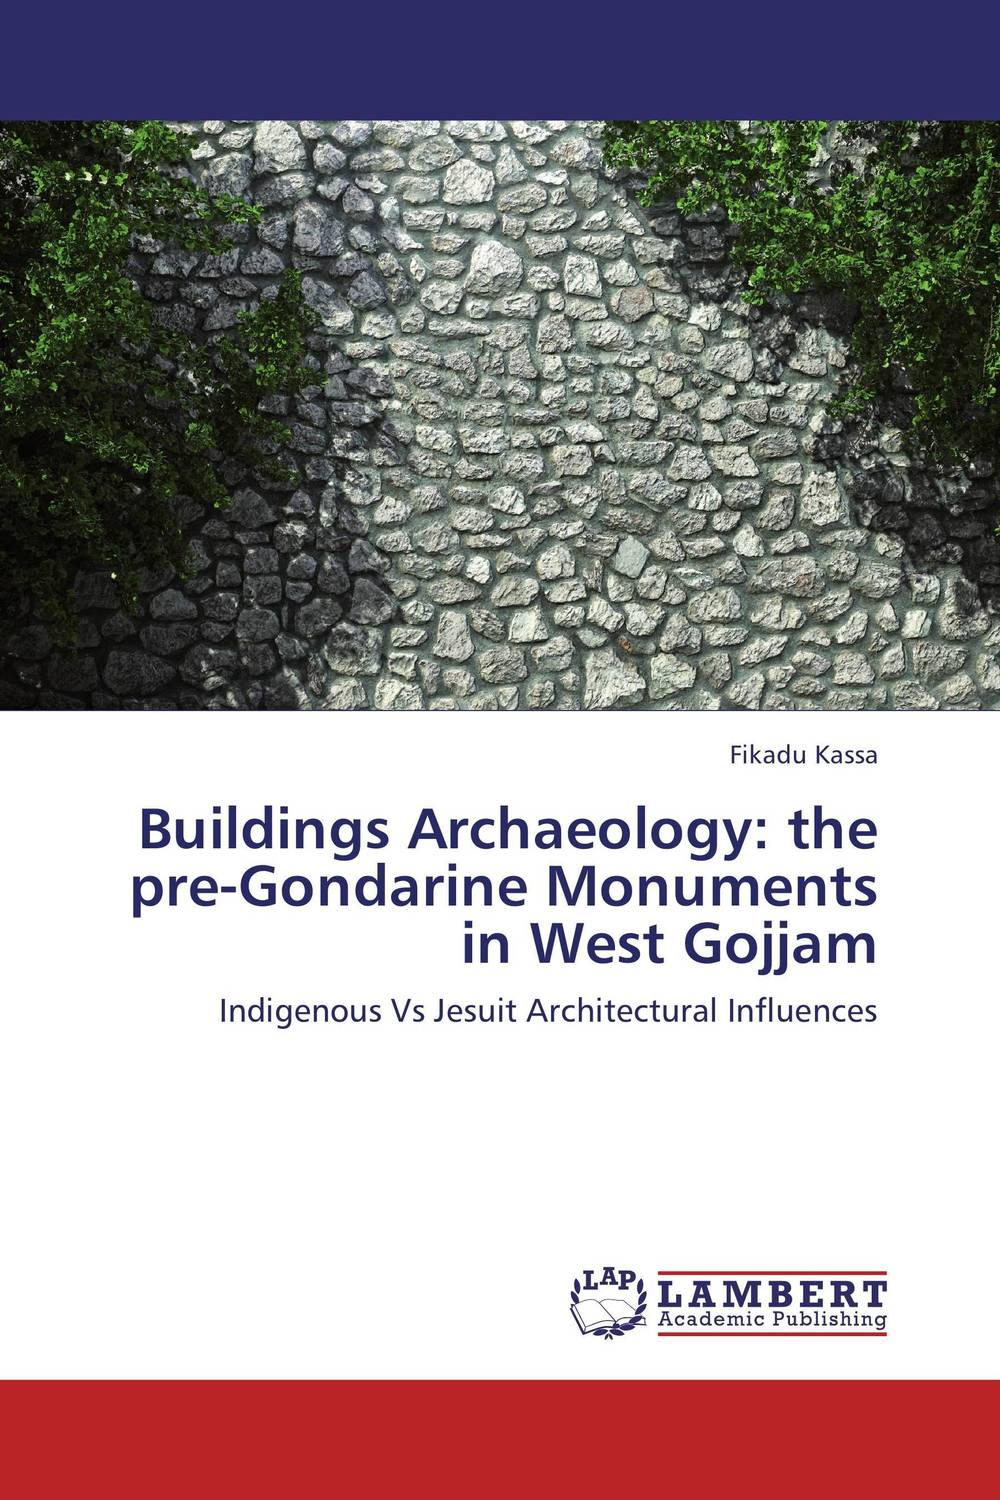 Buildings Archaeology: the pre-Gondarine Monuments in West Gojjam theocritus and the archaeology of greek poetry